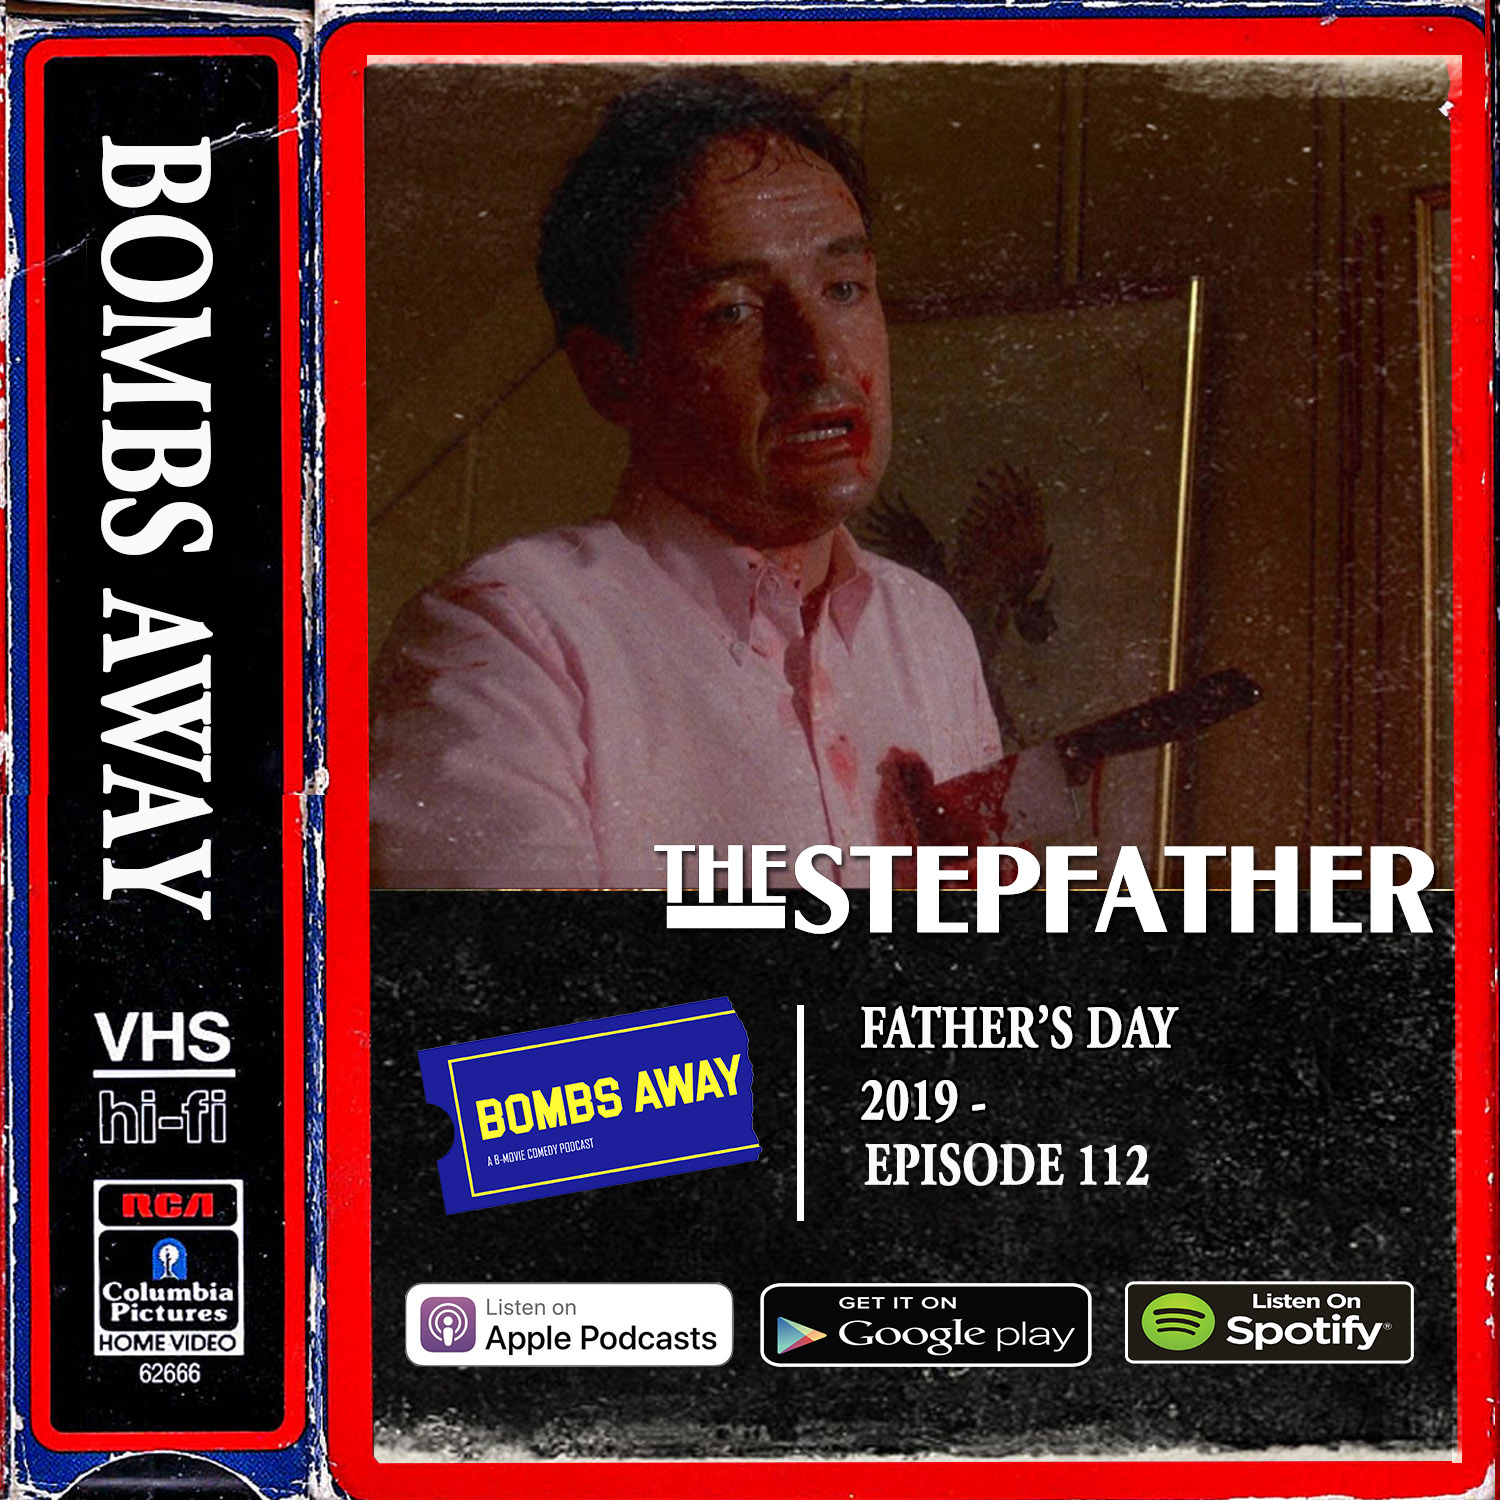 Father's Day 2019 - Episode 112  - The Stepfather (1987)